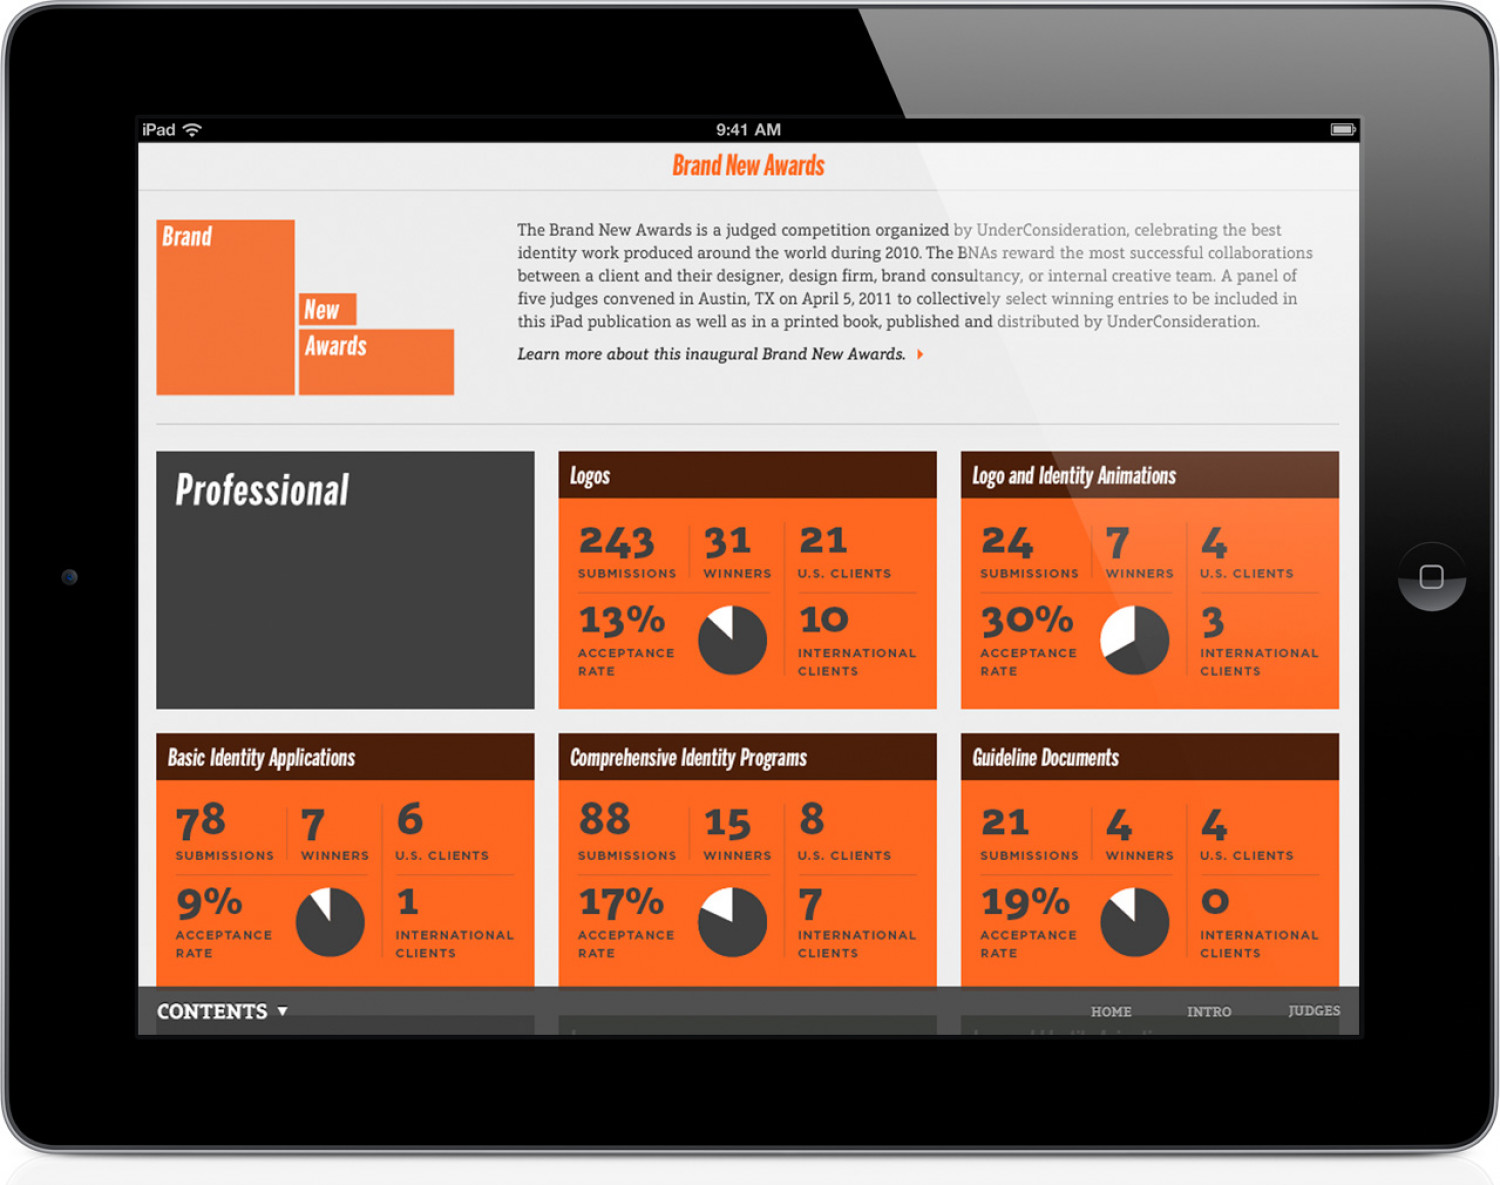 Brand New Awards, Pre-Order Book, iPad Preview, and Winner Thumbnails Infographic